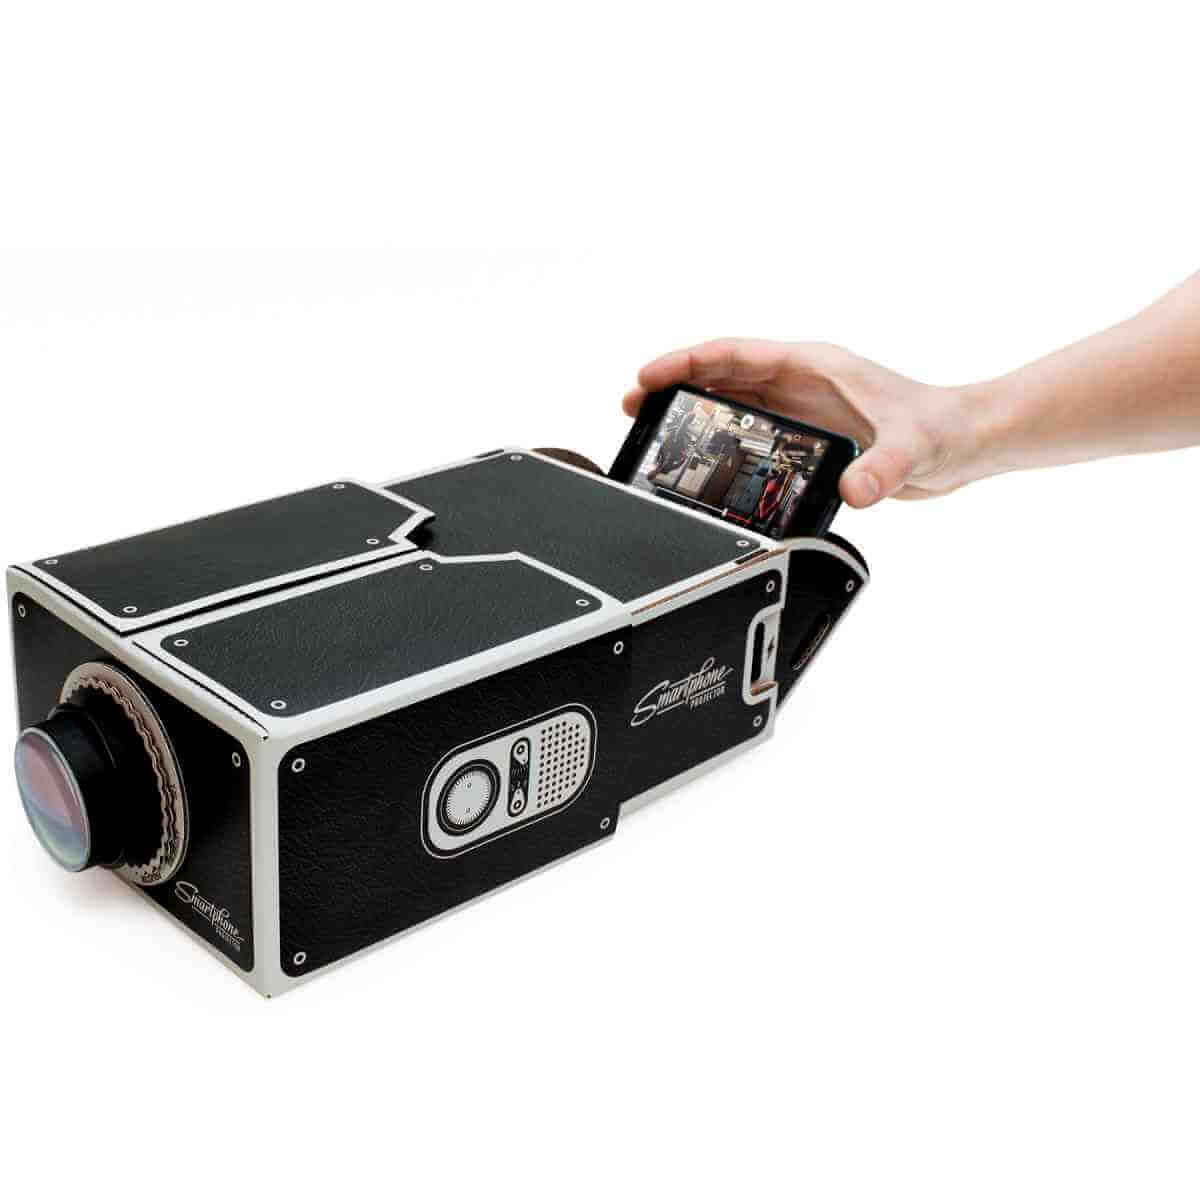 Smartphone Projector | Geek and Gadgets Christmas Gift Guide